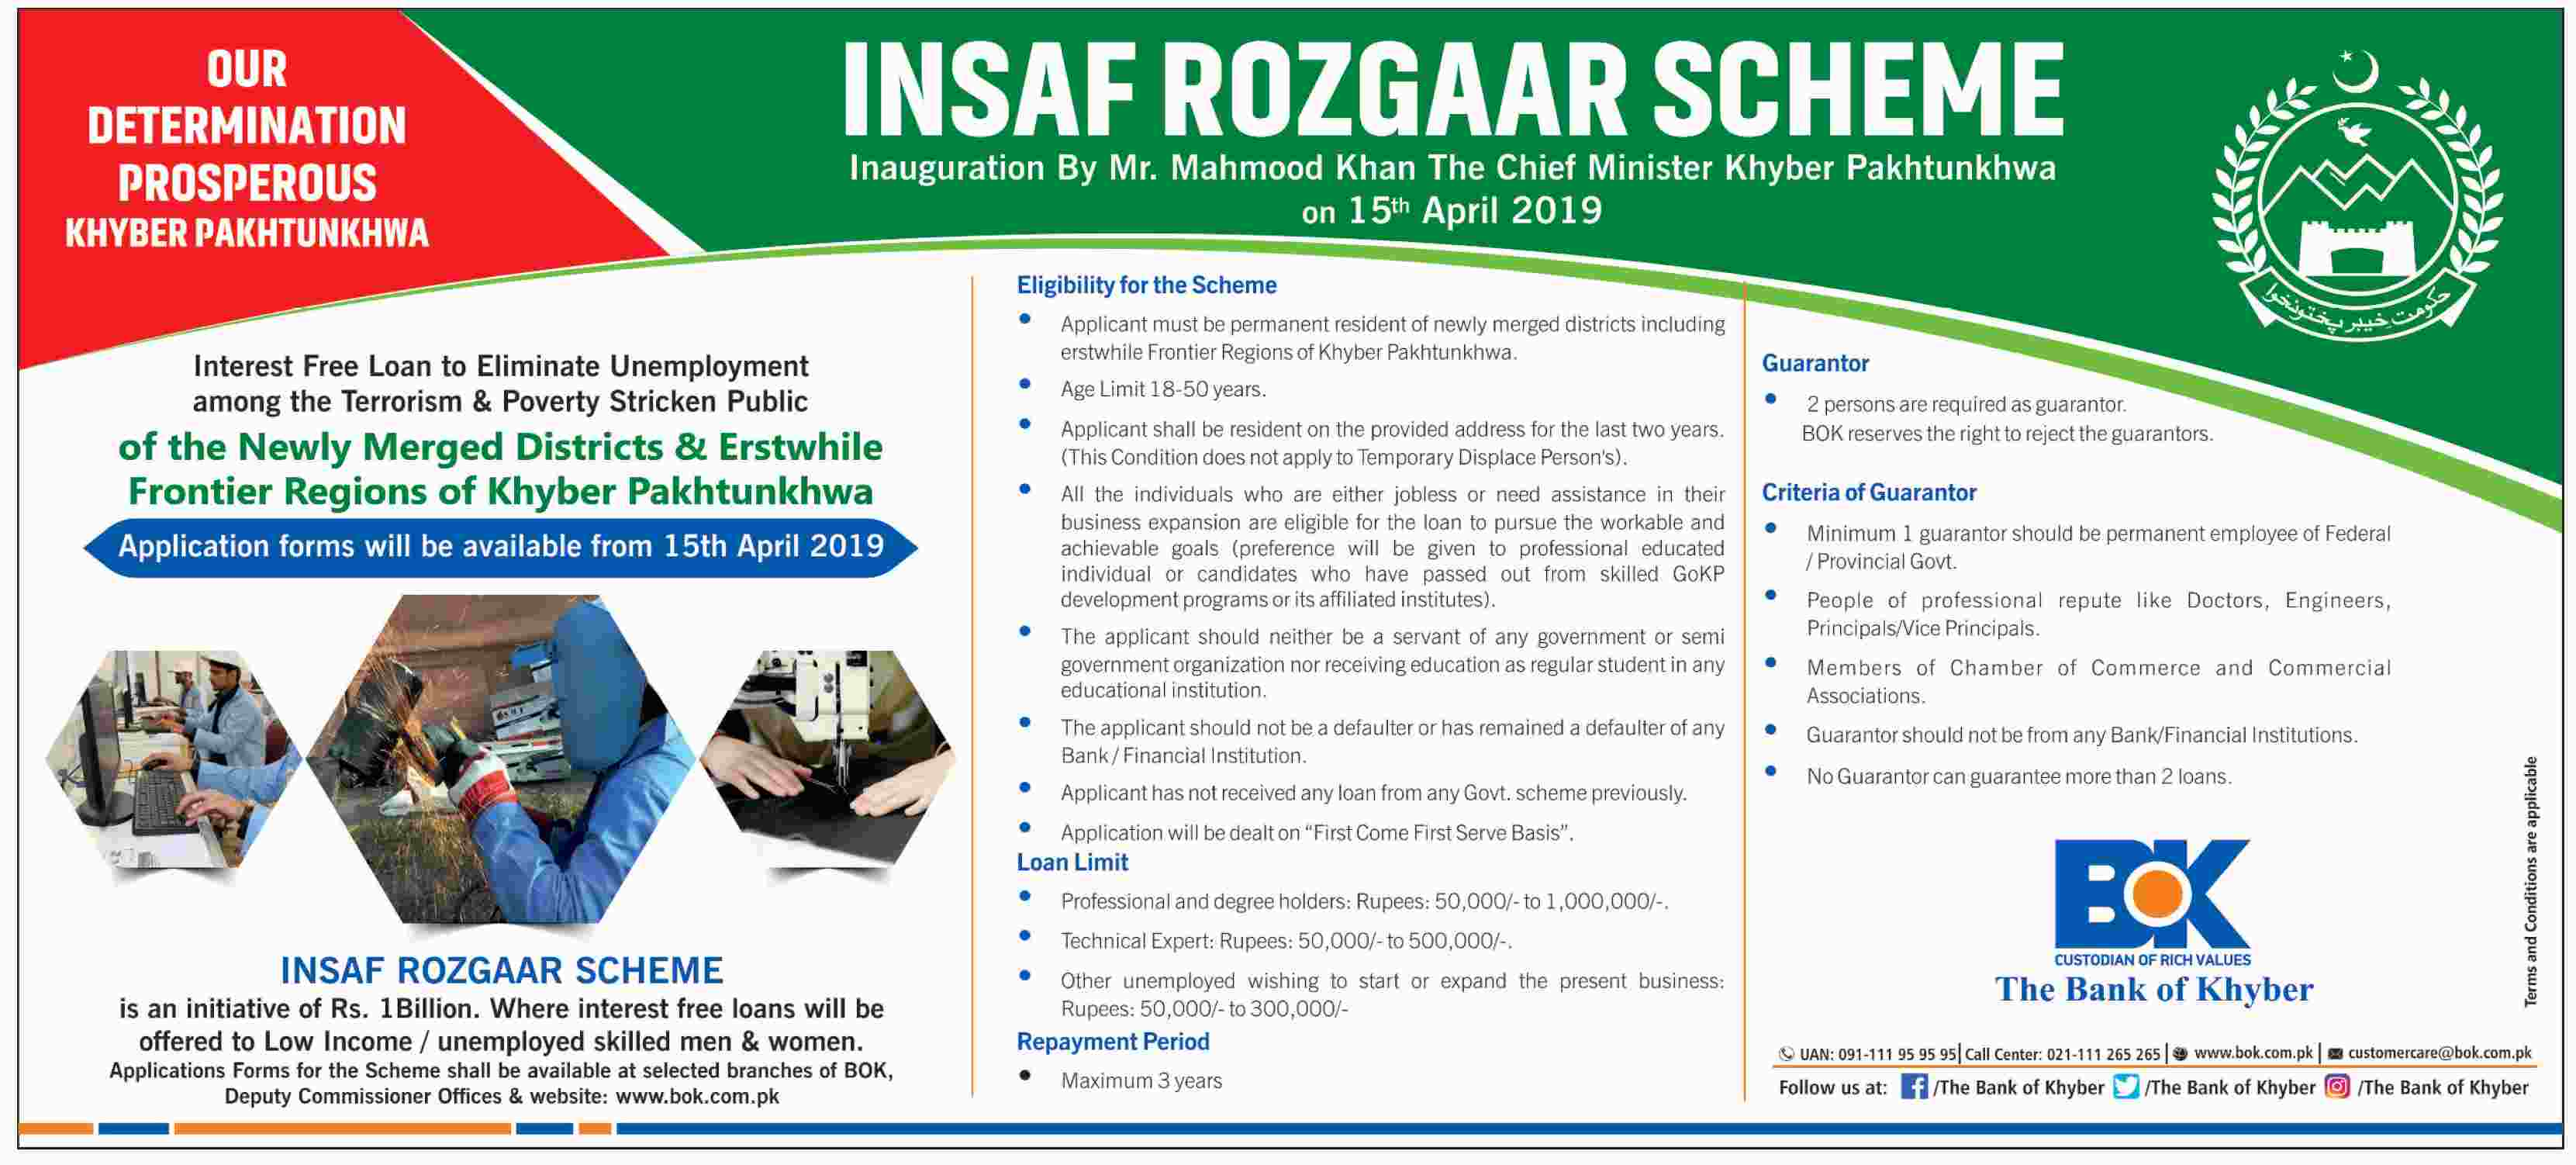 Insaf Rozgaar Scheme - Interest Free Loans for Low Income / Unemployed Skilled Persons in Pakhtunkhwa